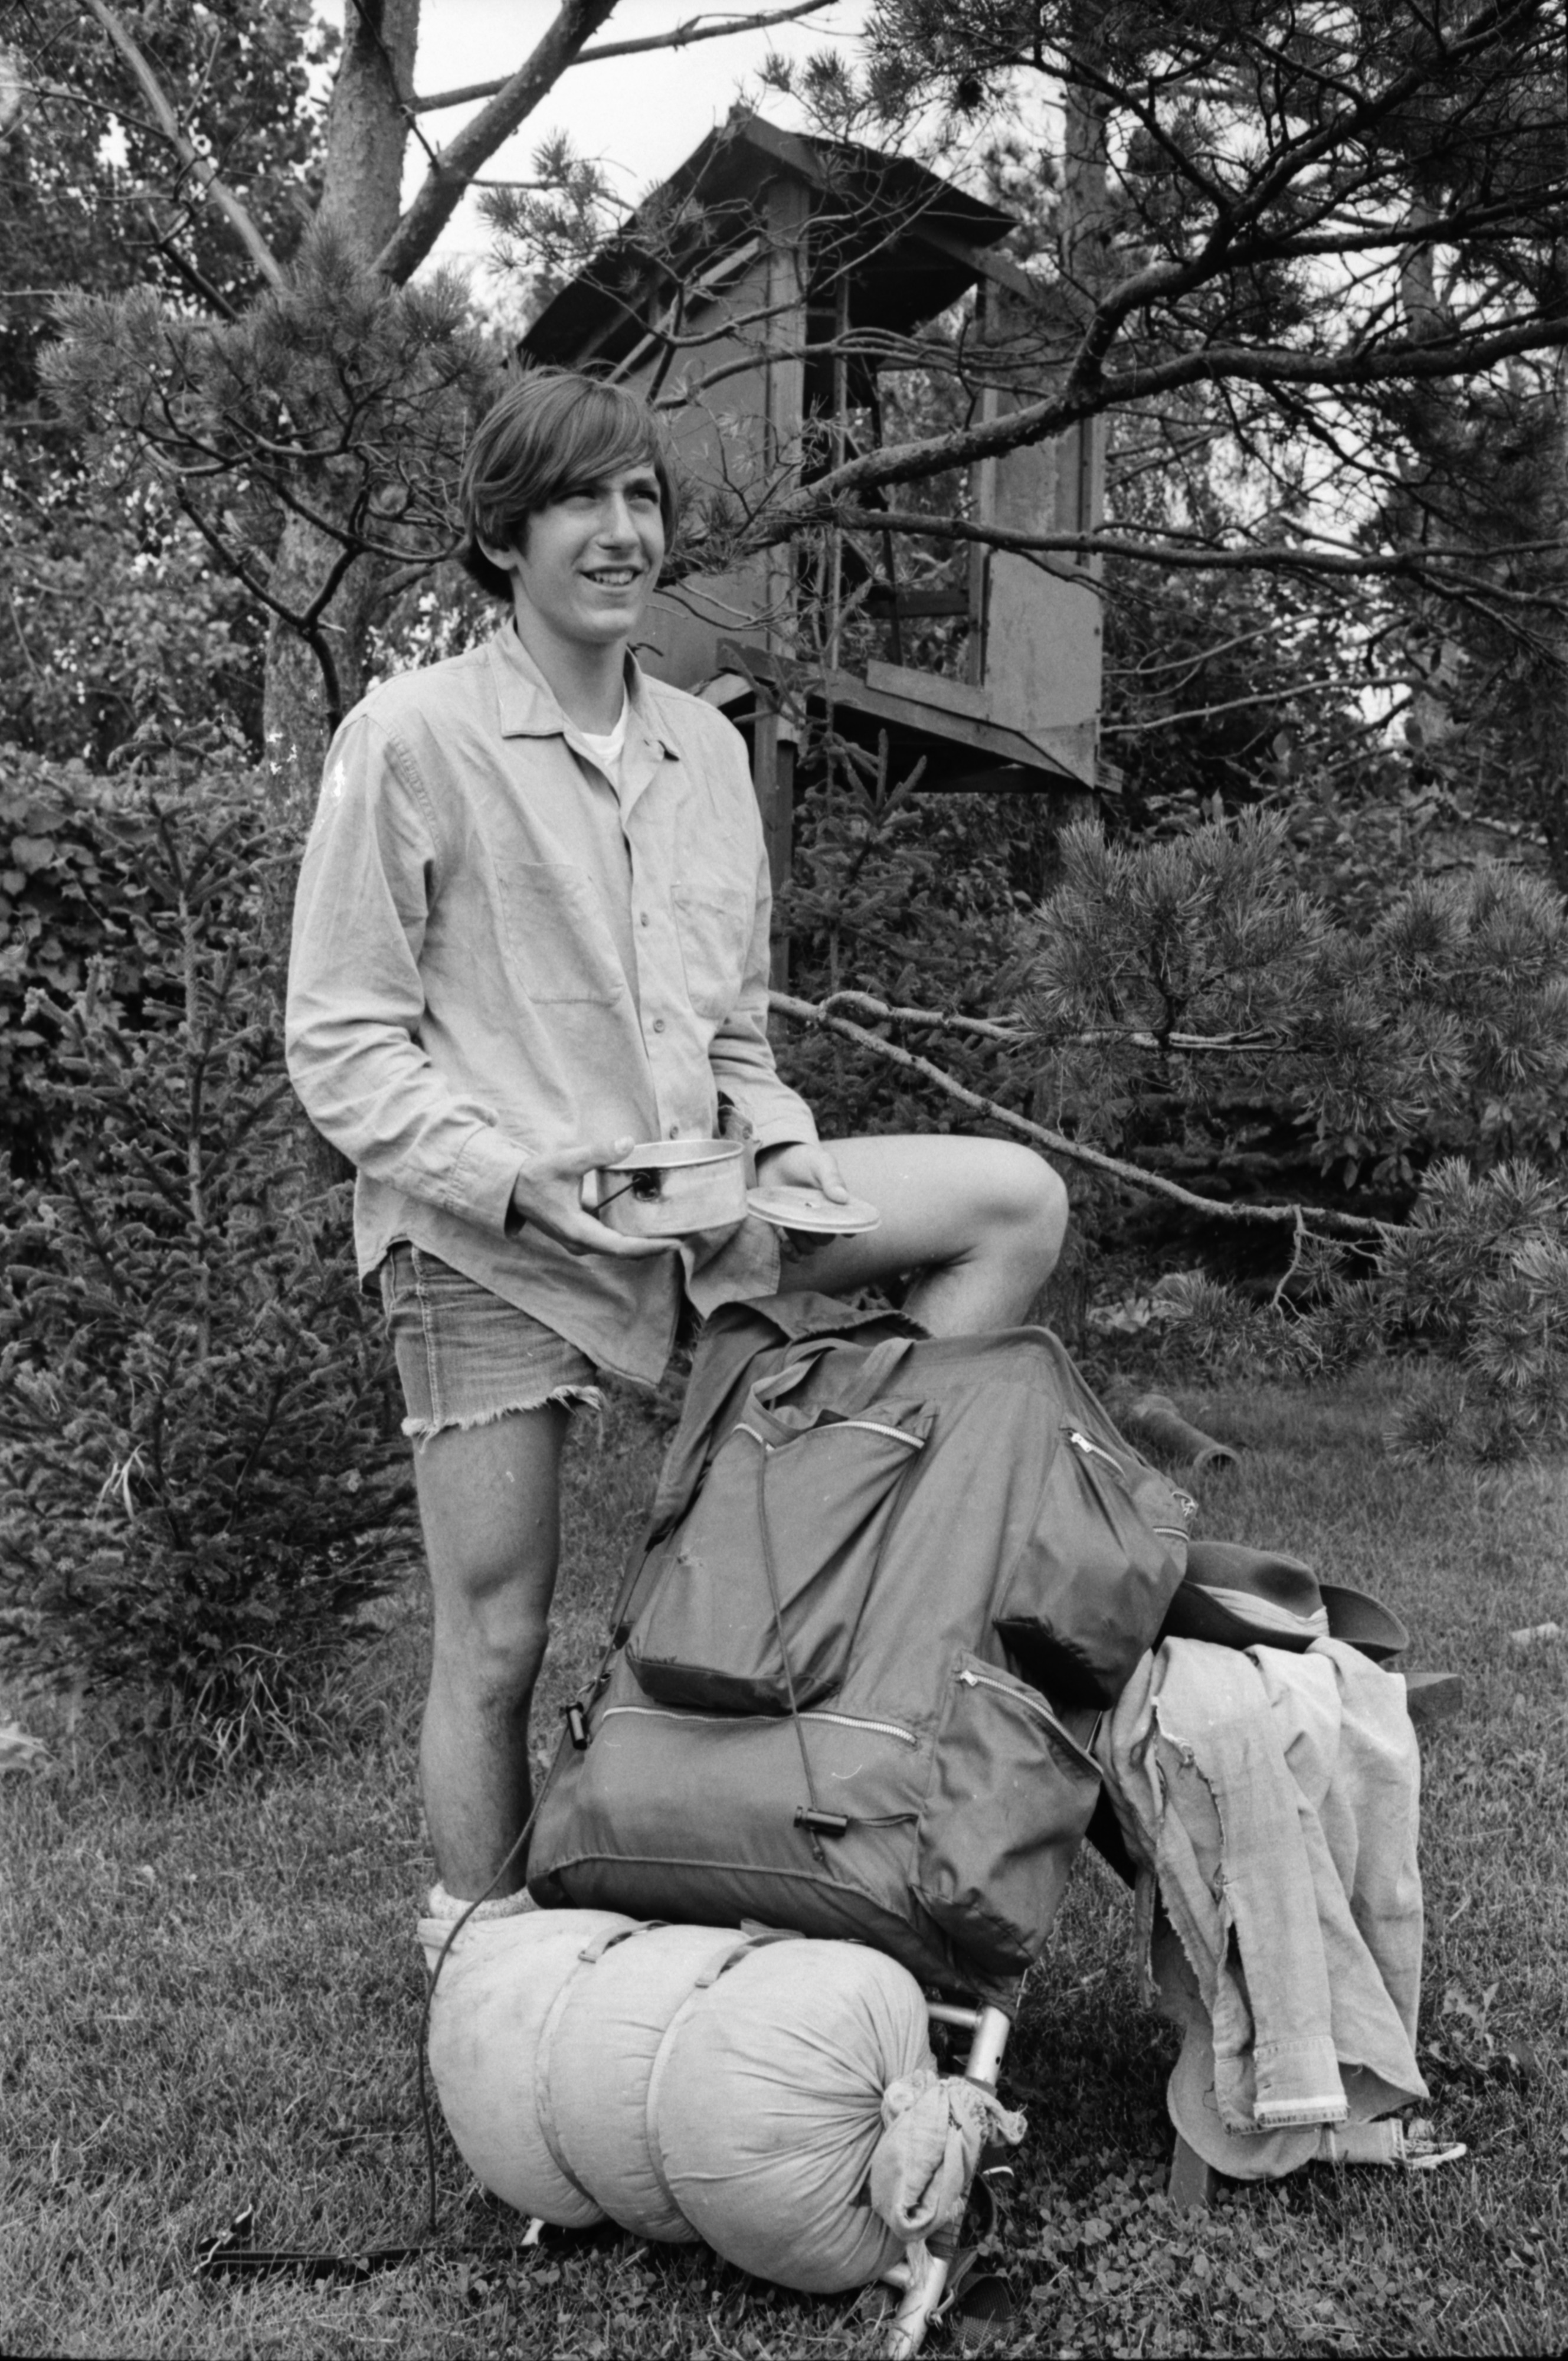 Belleville Teen Completes Long-Distance Hike, September 1969 image